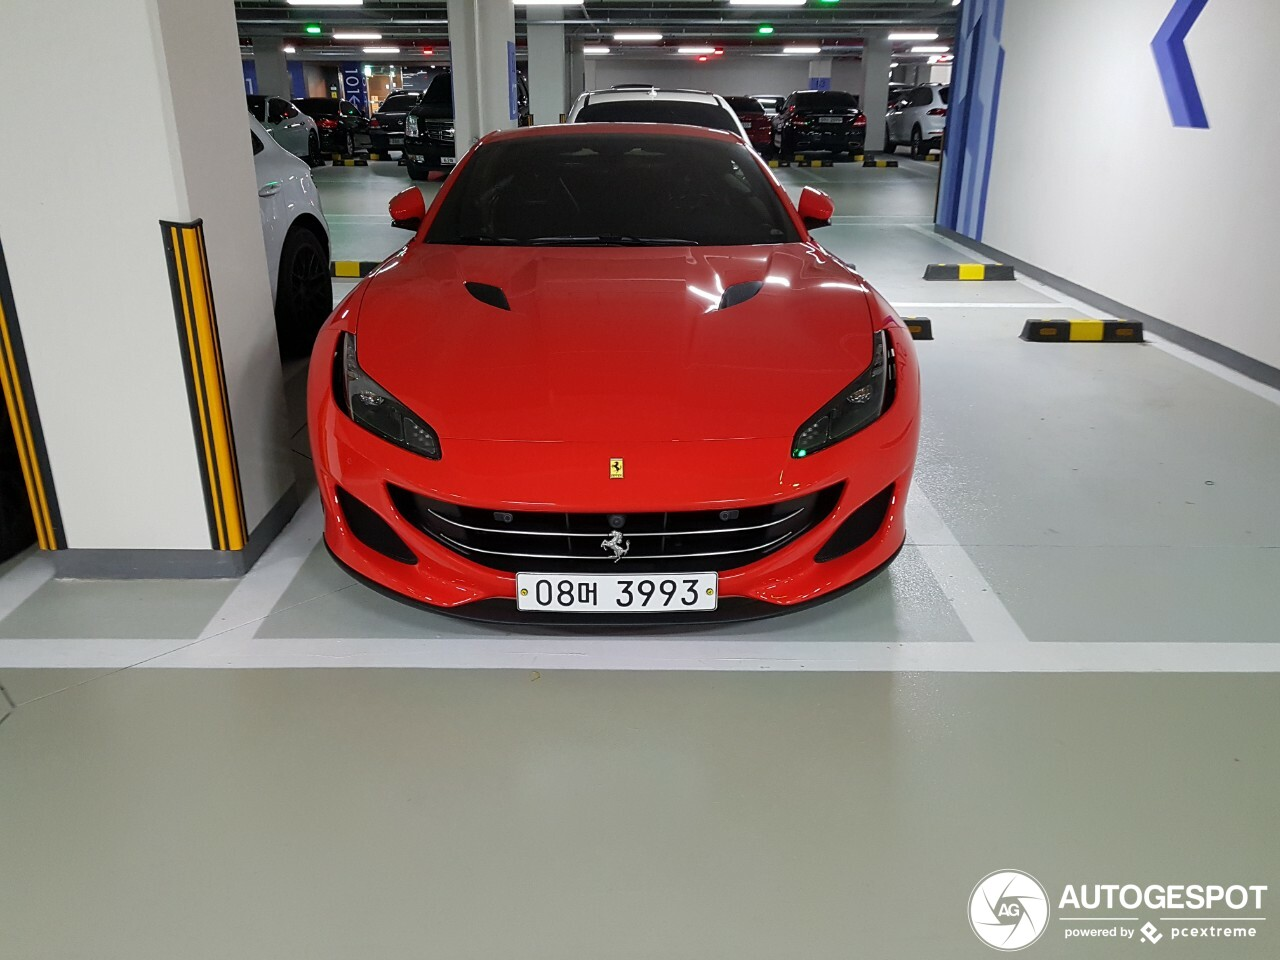 ferrari portofino 2 janvier 2019 autogespot. Black Bedroom Furniture Sets. Home Design Ideas